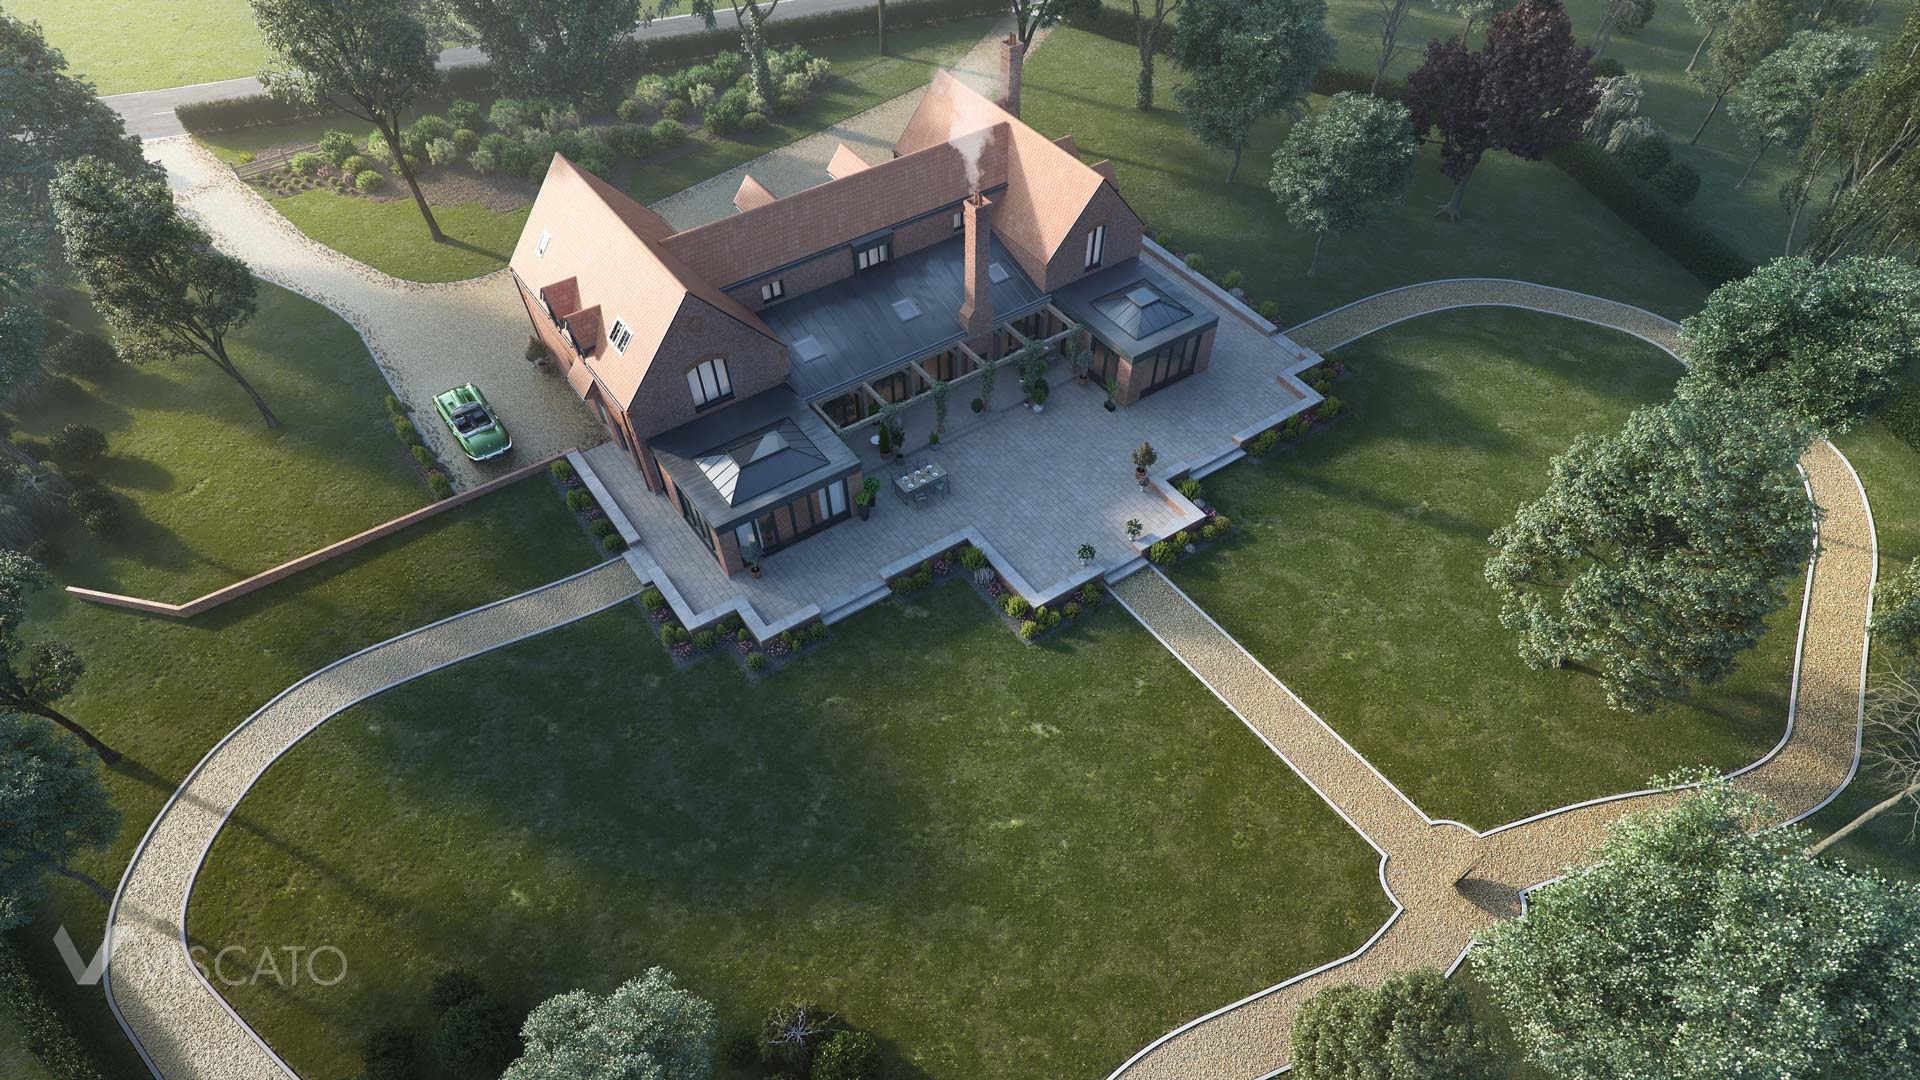 Brick House in England, Viscato 3D visualization- bird's eye view